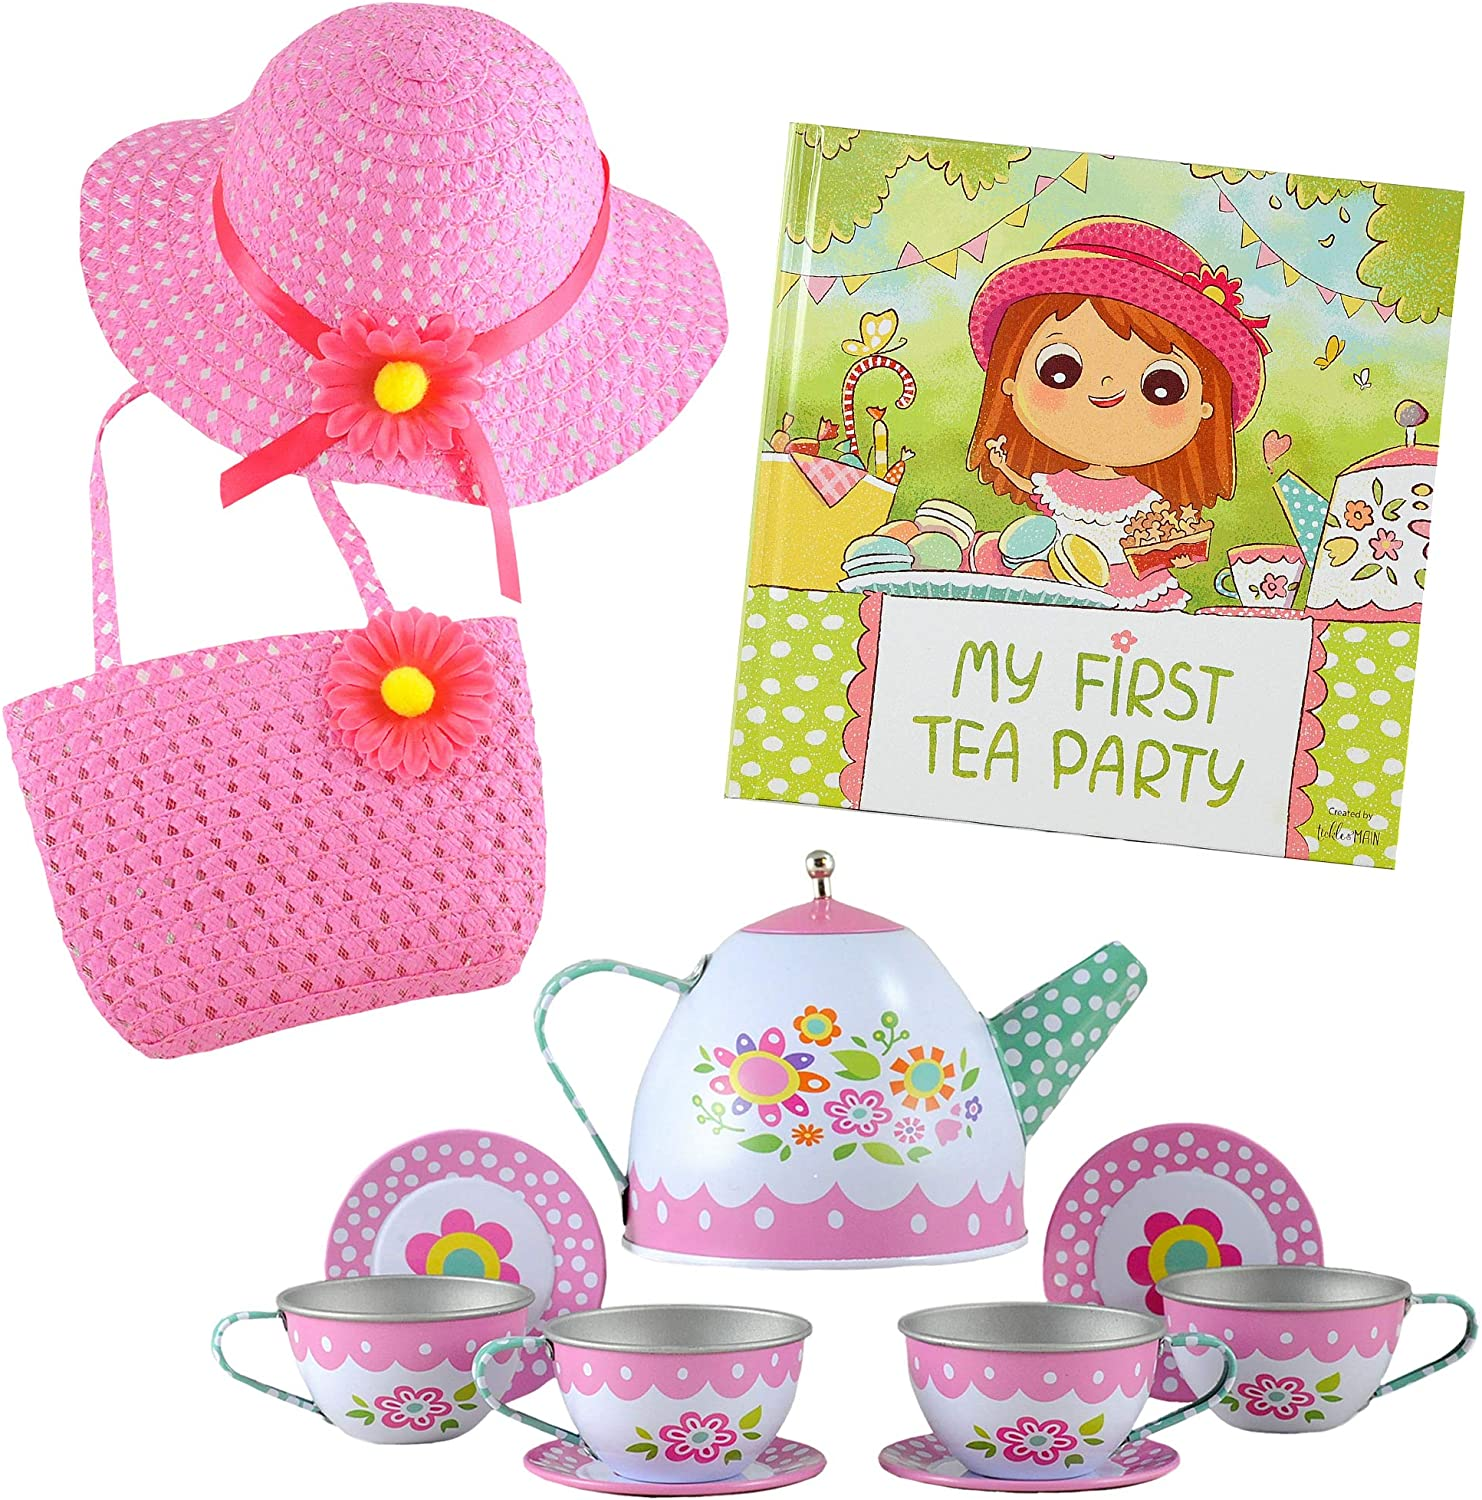 2-year-old-girls-tea-party-set